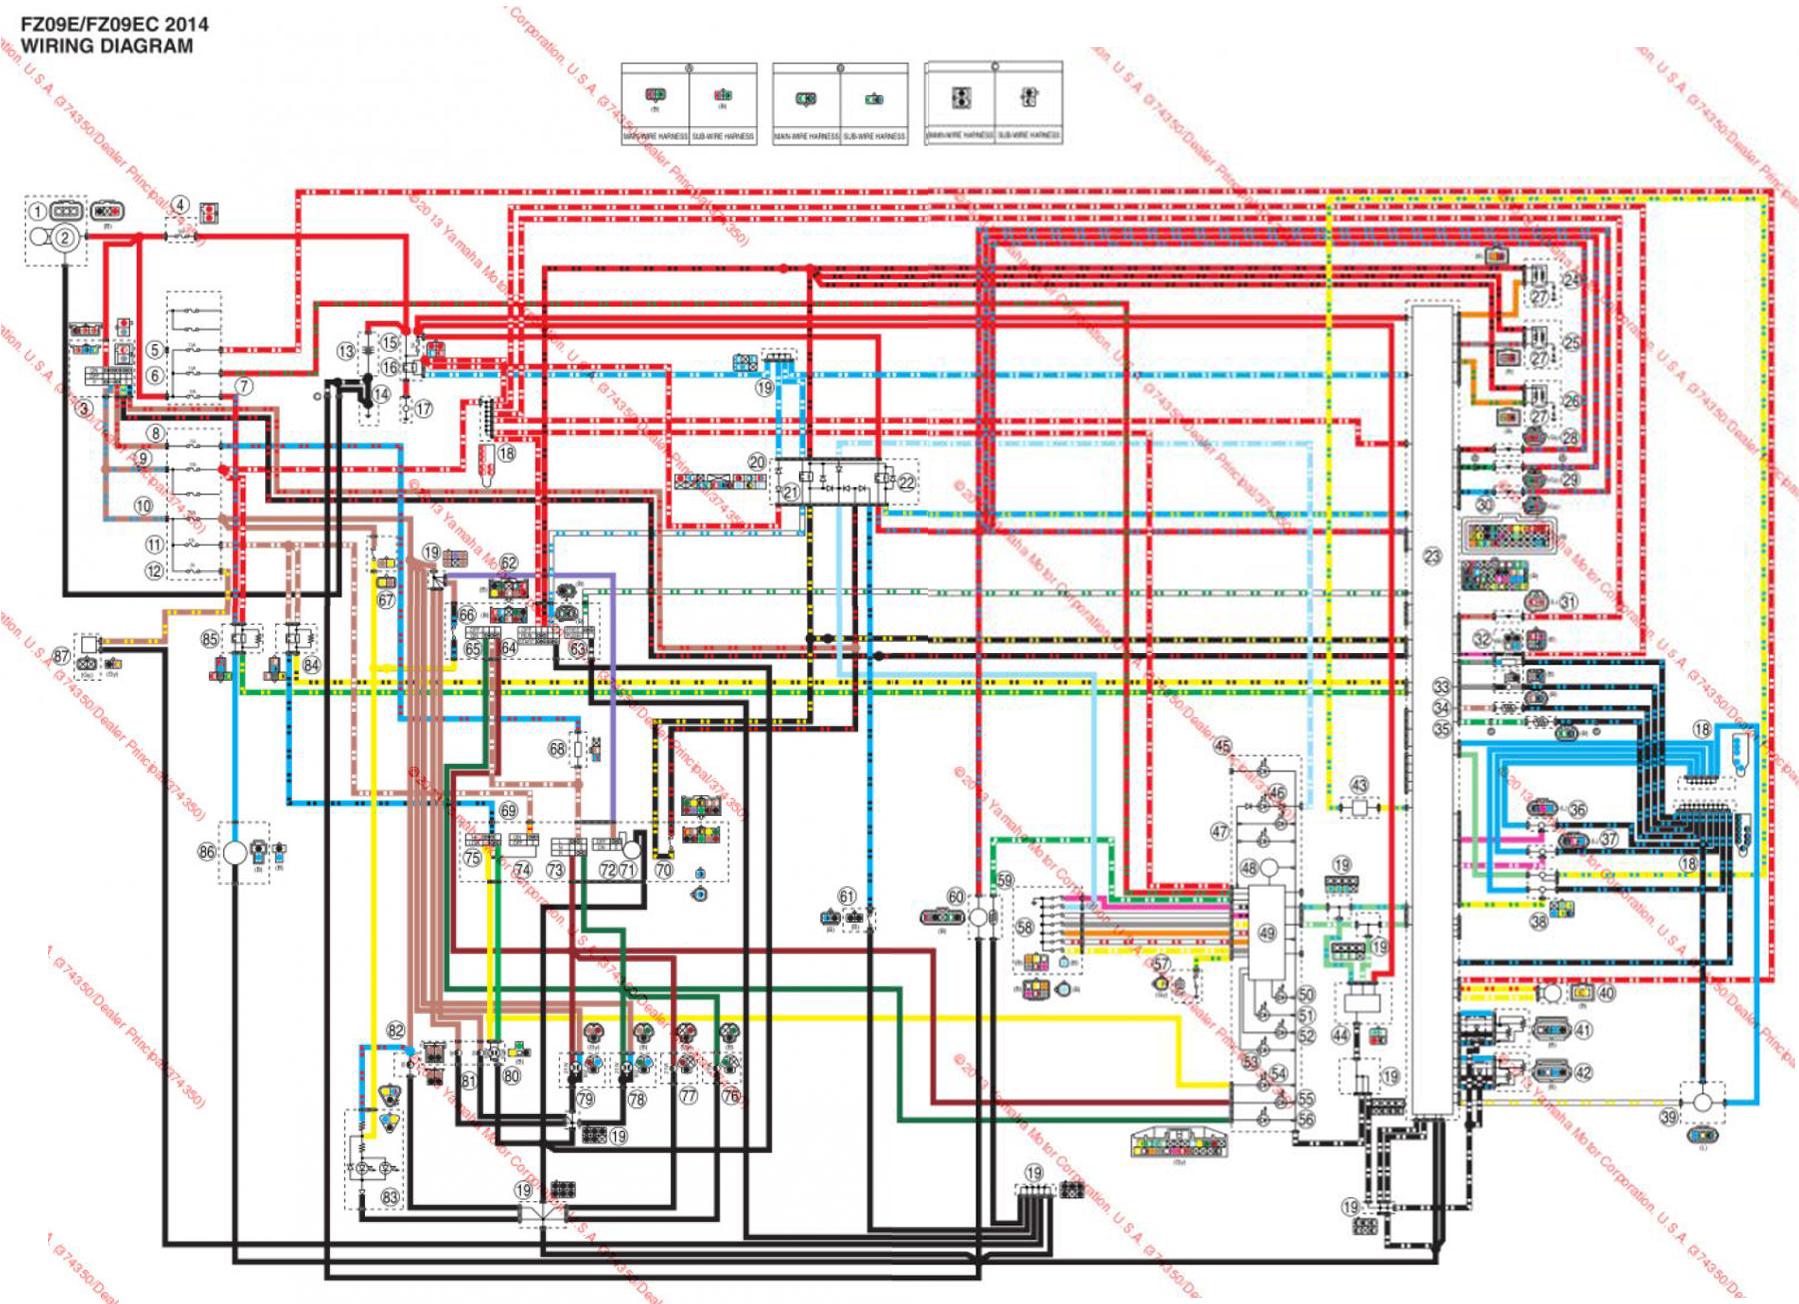 Wiring Diagram On 97 Cbr 600 Building 2004 Ninja Schematic Anyone Have A Honda Cbr600rr